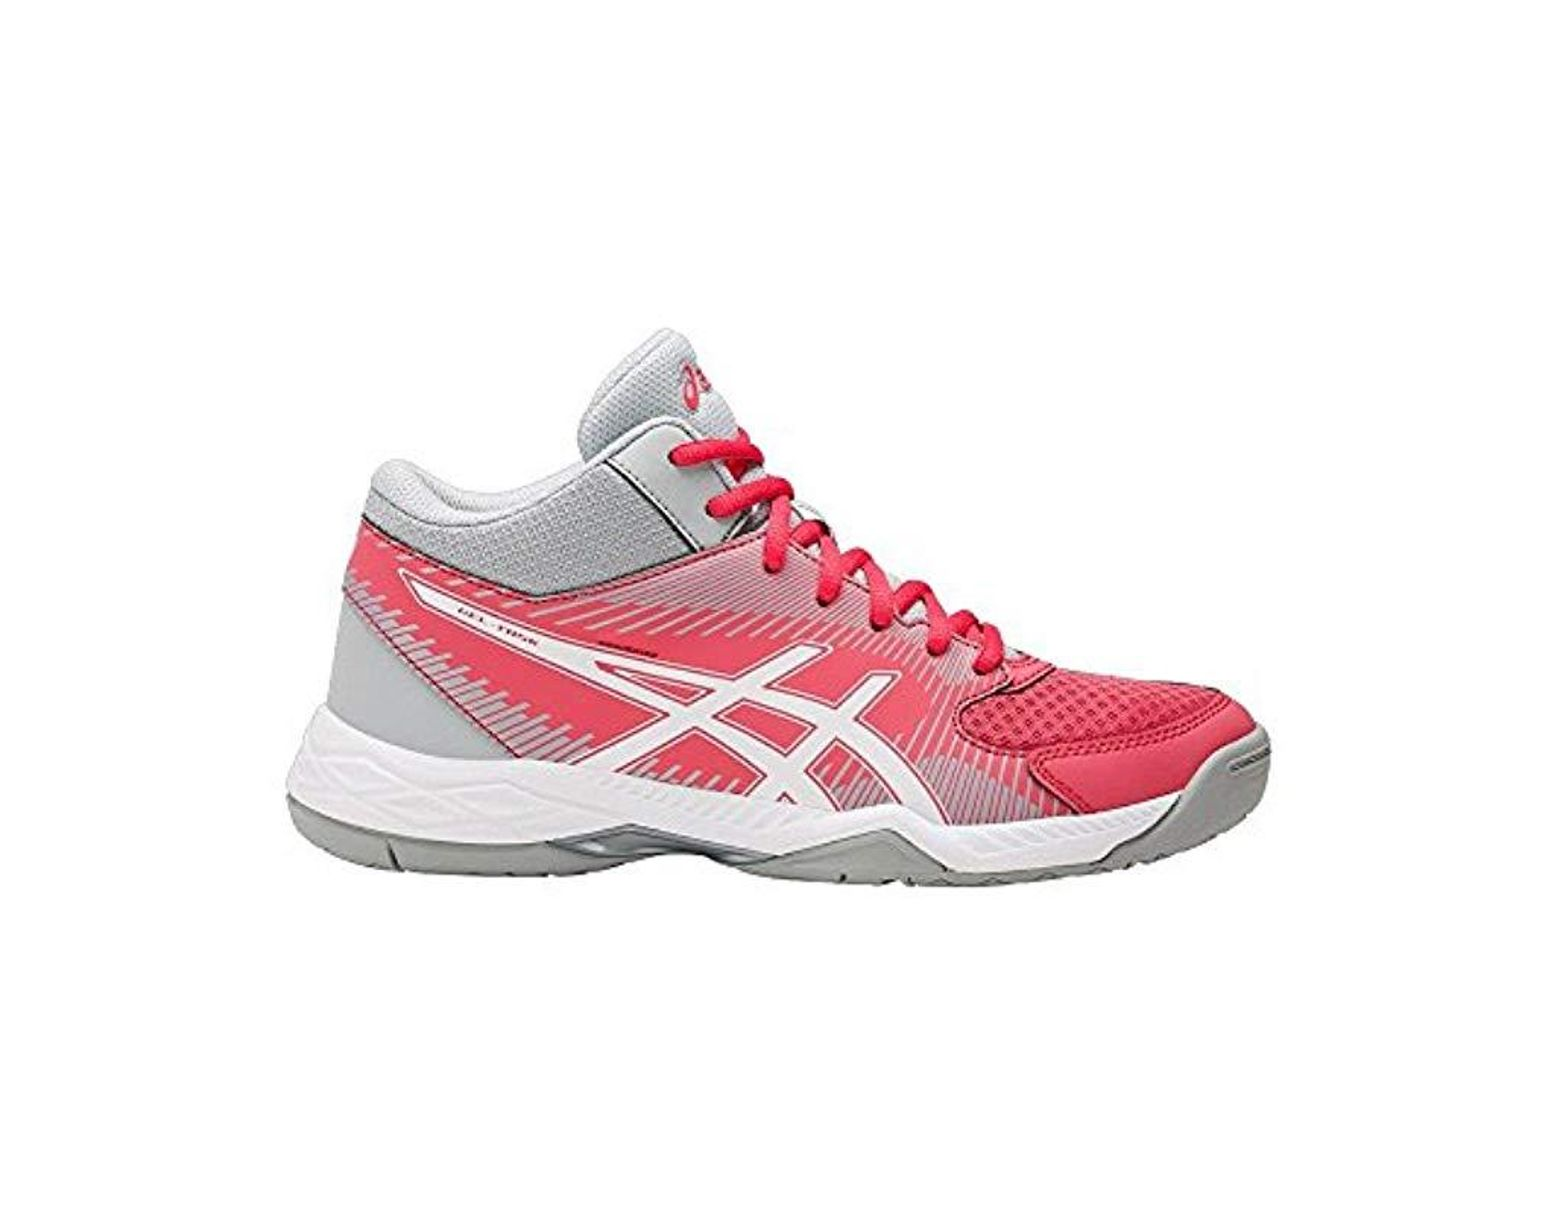 0c0ea05cc7337 Women's Pink Gel-task Mt Volleyball Shoes